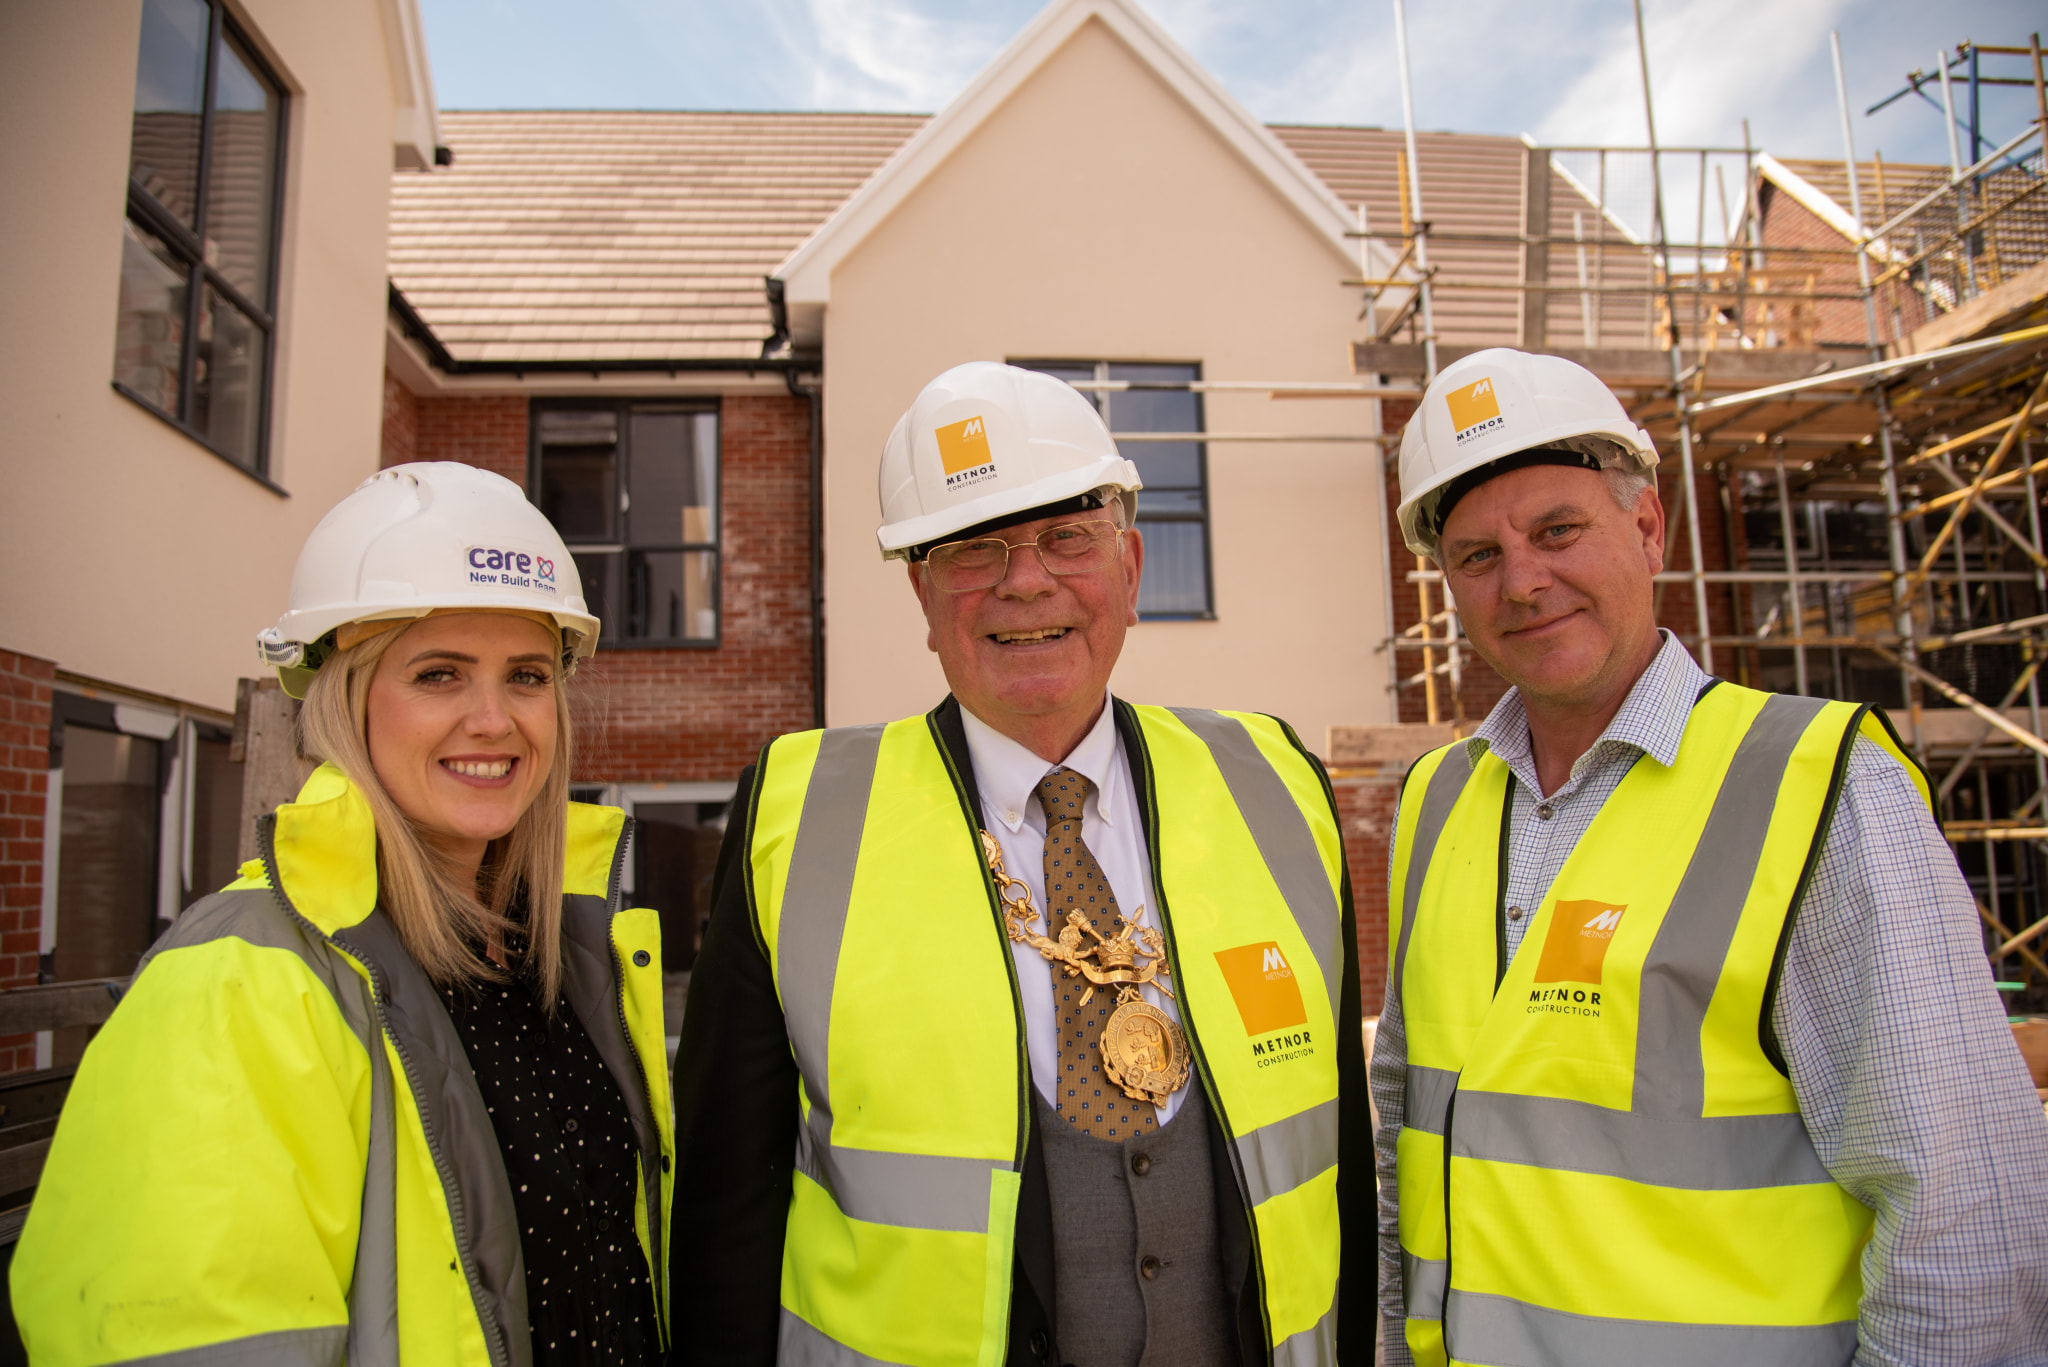 DeewaterGrange_PR-15 Mayor of Chester Alec Black visits Care UK newest site Deewater Grange in Huntington Chester pictured with Richard Dixon Metnor